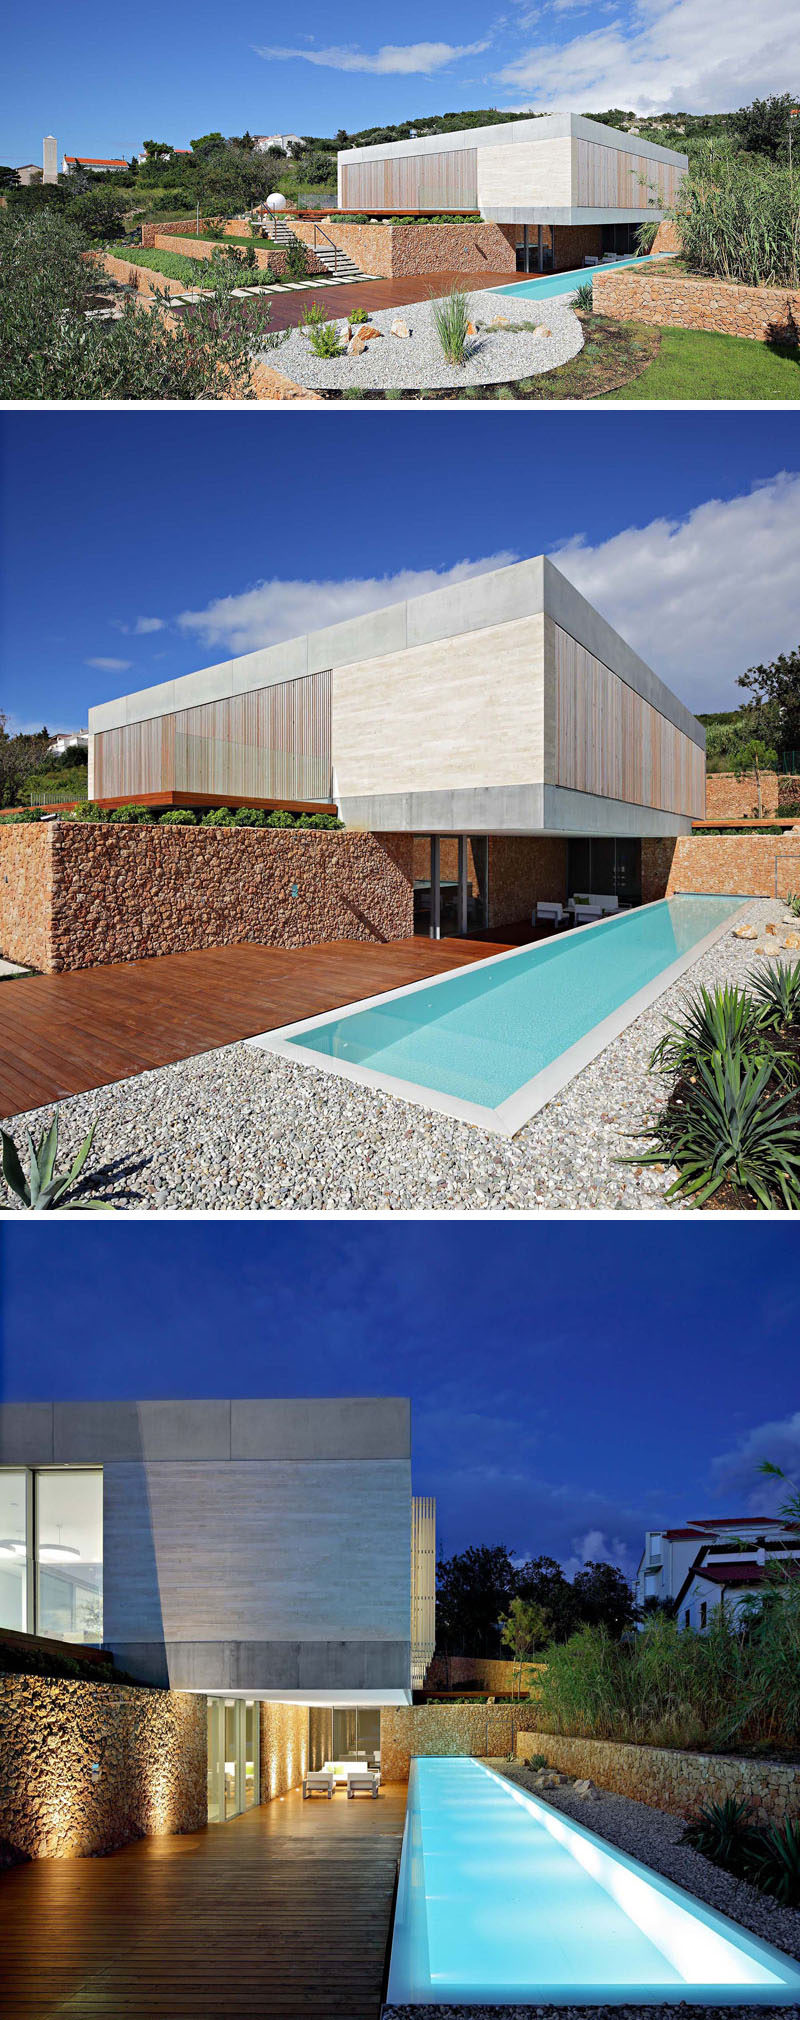 The exterior of this modern house uses smooth concrete, Travertine, vertical wooden shutters, and large sliding glass walls. To the side of the house, there's a covered terrace and a linear 55 foot (17m) long outdoor pool. #ModernHouse #ModernArchitecture #SwimmingPool #LandscapeDesign